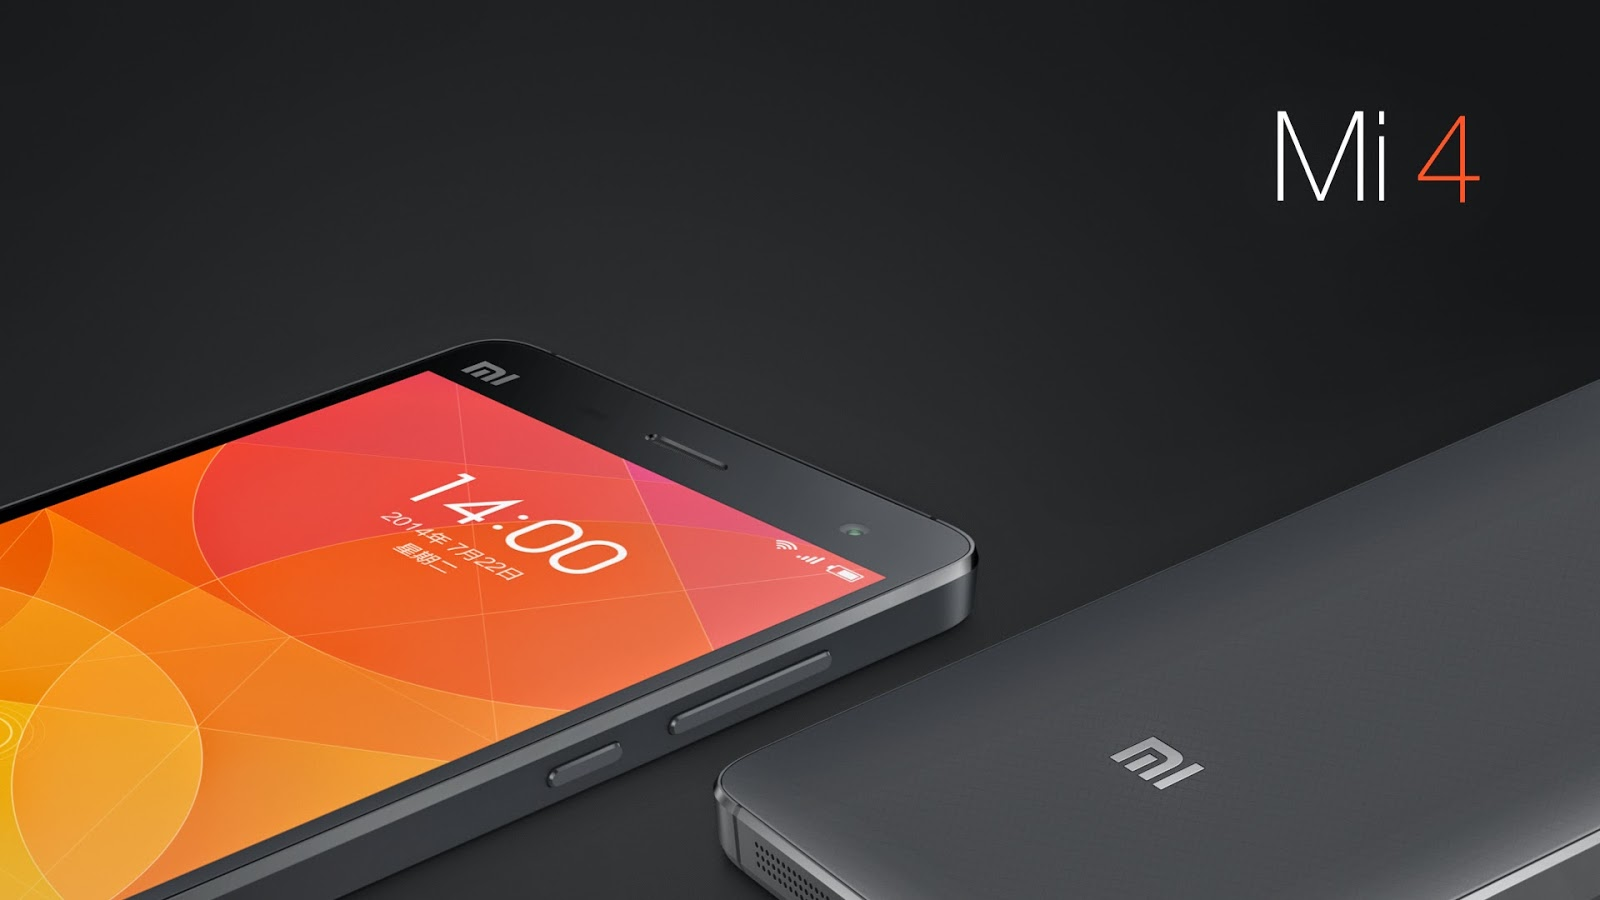 xiaomi mi4 with 5 inch display snapdragon 801 processor